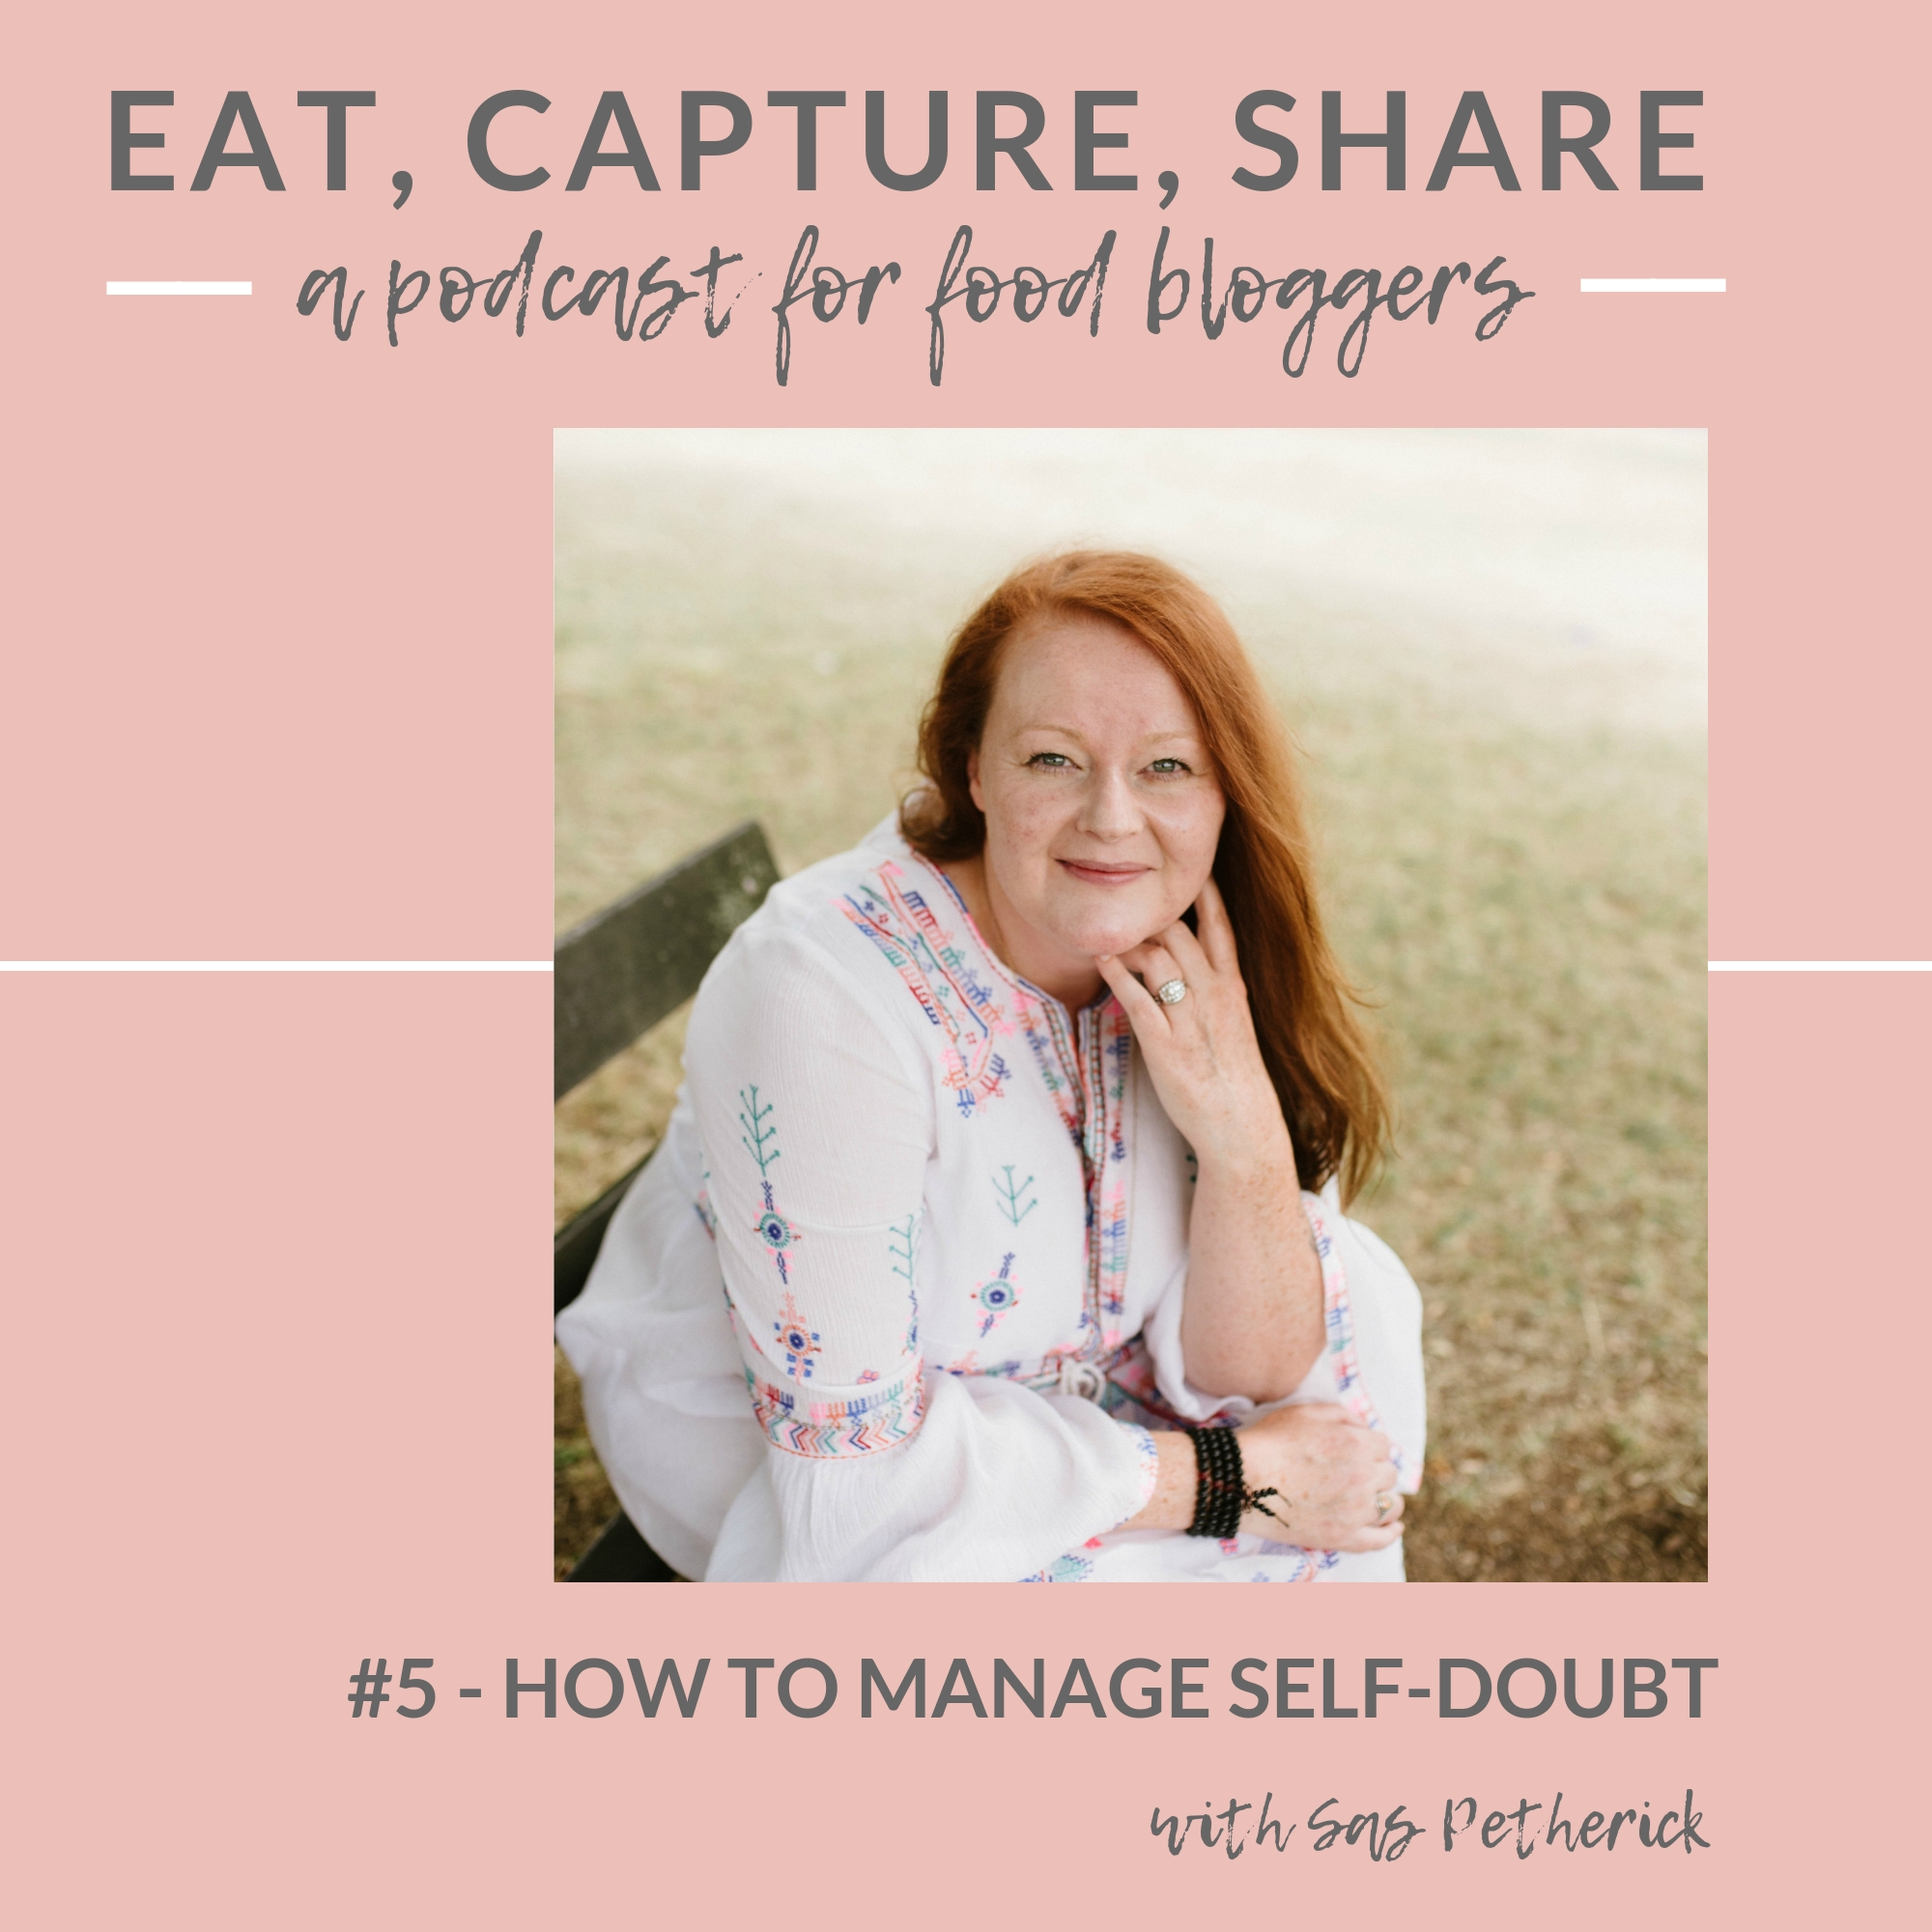 How to manage self doubt on instagram - Eat, Capture, Share food blogger podcast